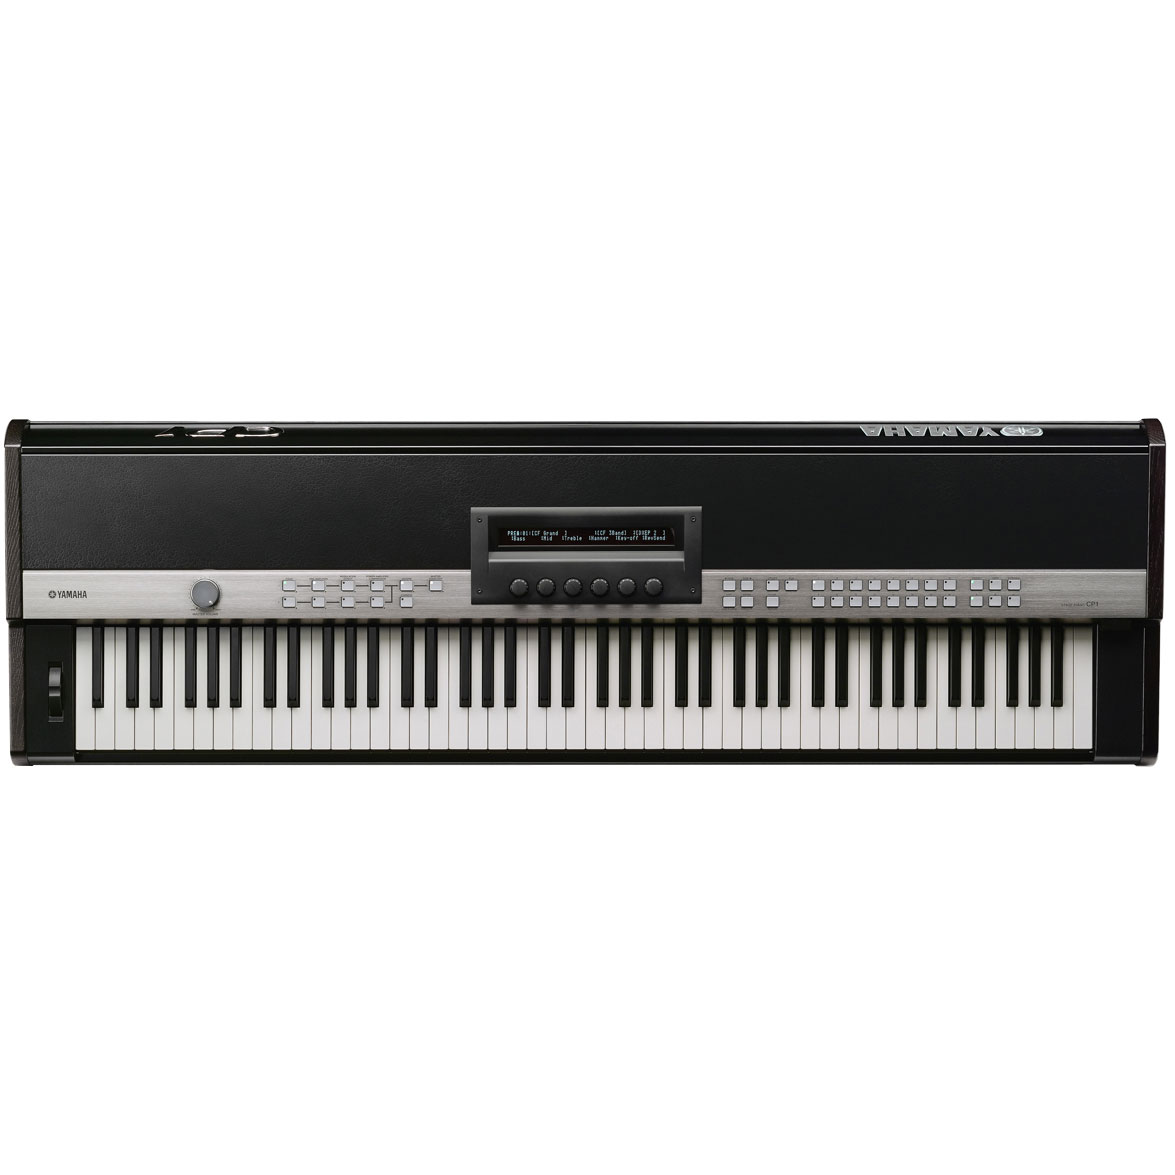 yamaha cp1 stage piano review yamaha s flagship cp1. Black Bedroom Furniture Sets. Home Design Ideas